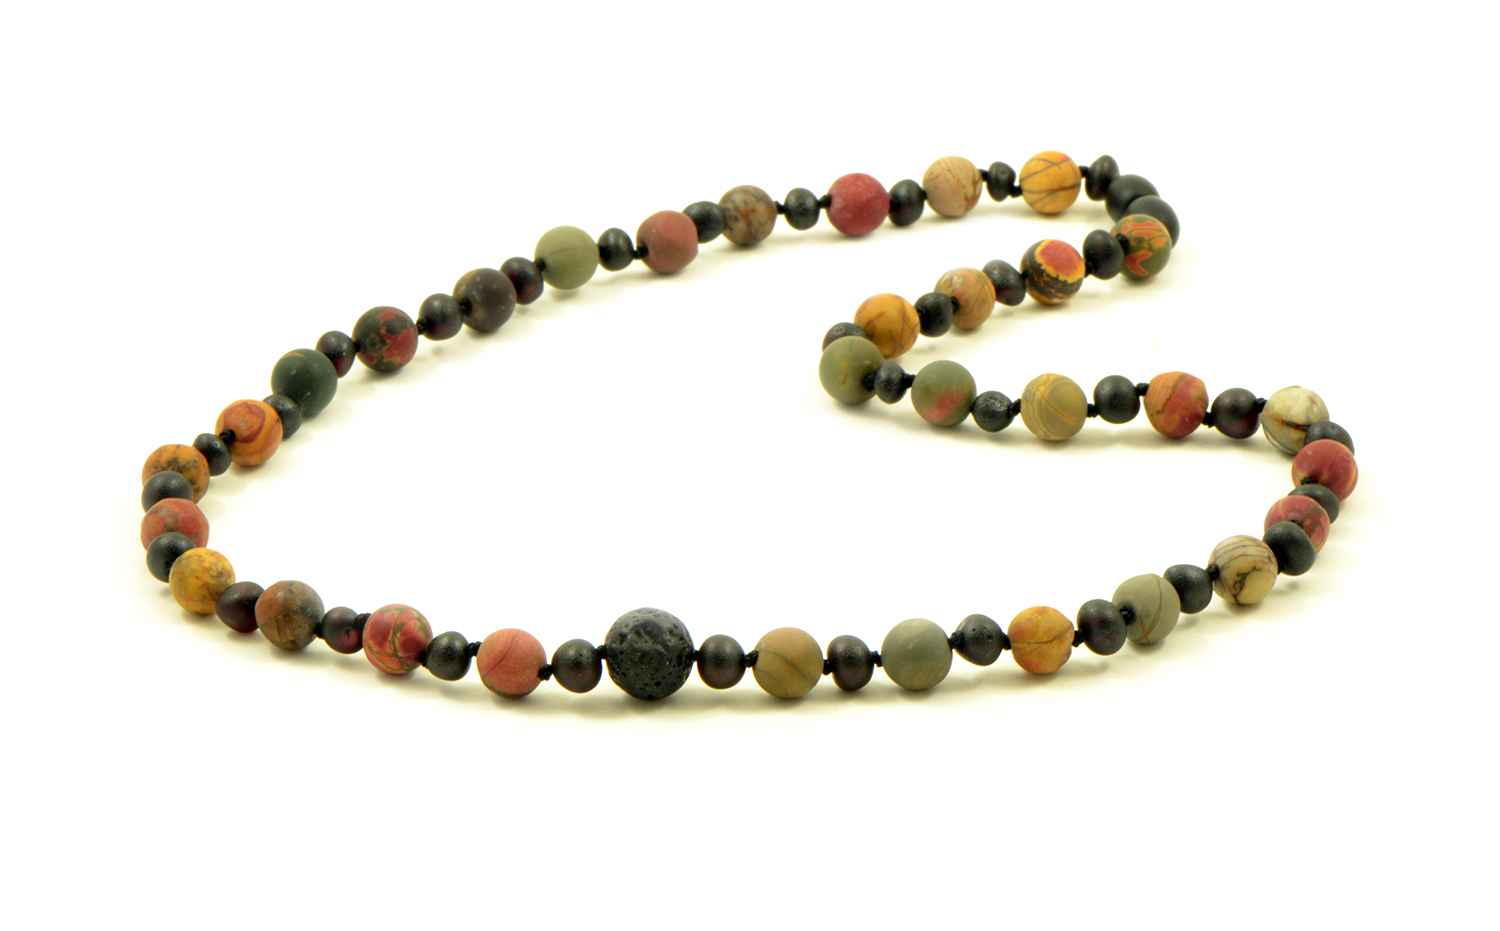 Amber and jasper adult necklace